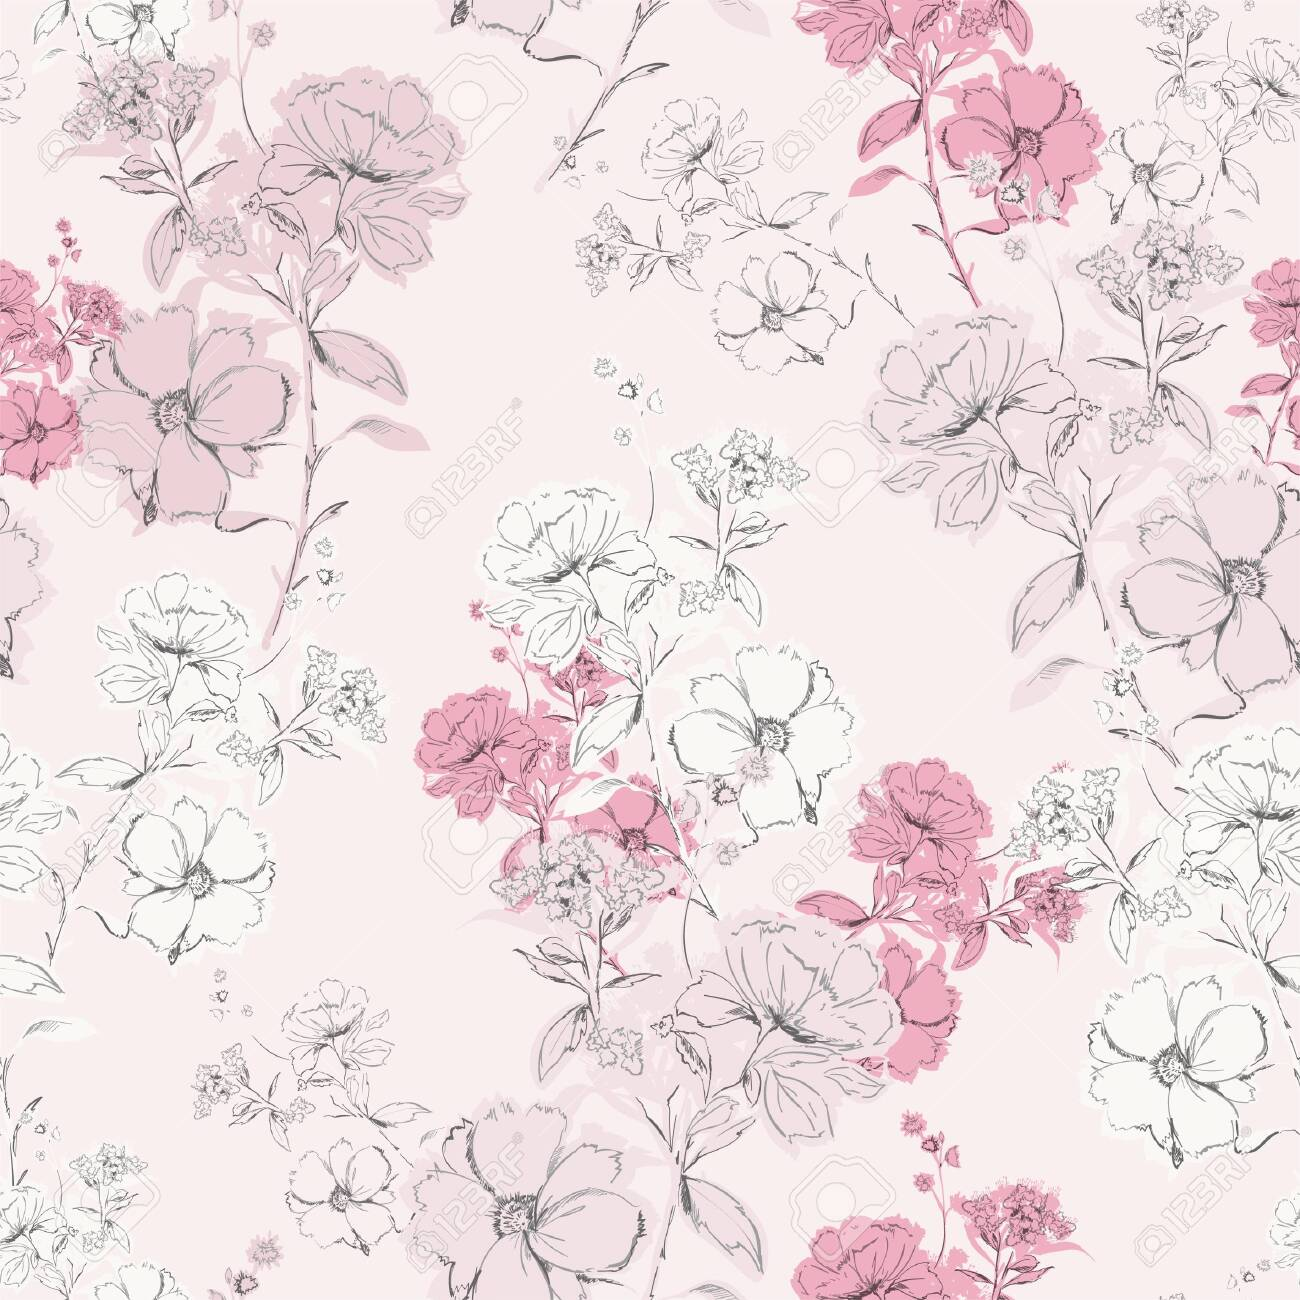 Soft Pink Delicate Blooming Hand Drawn Pencil Line Skecth Seamless